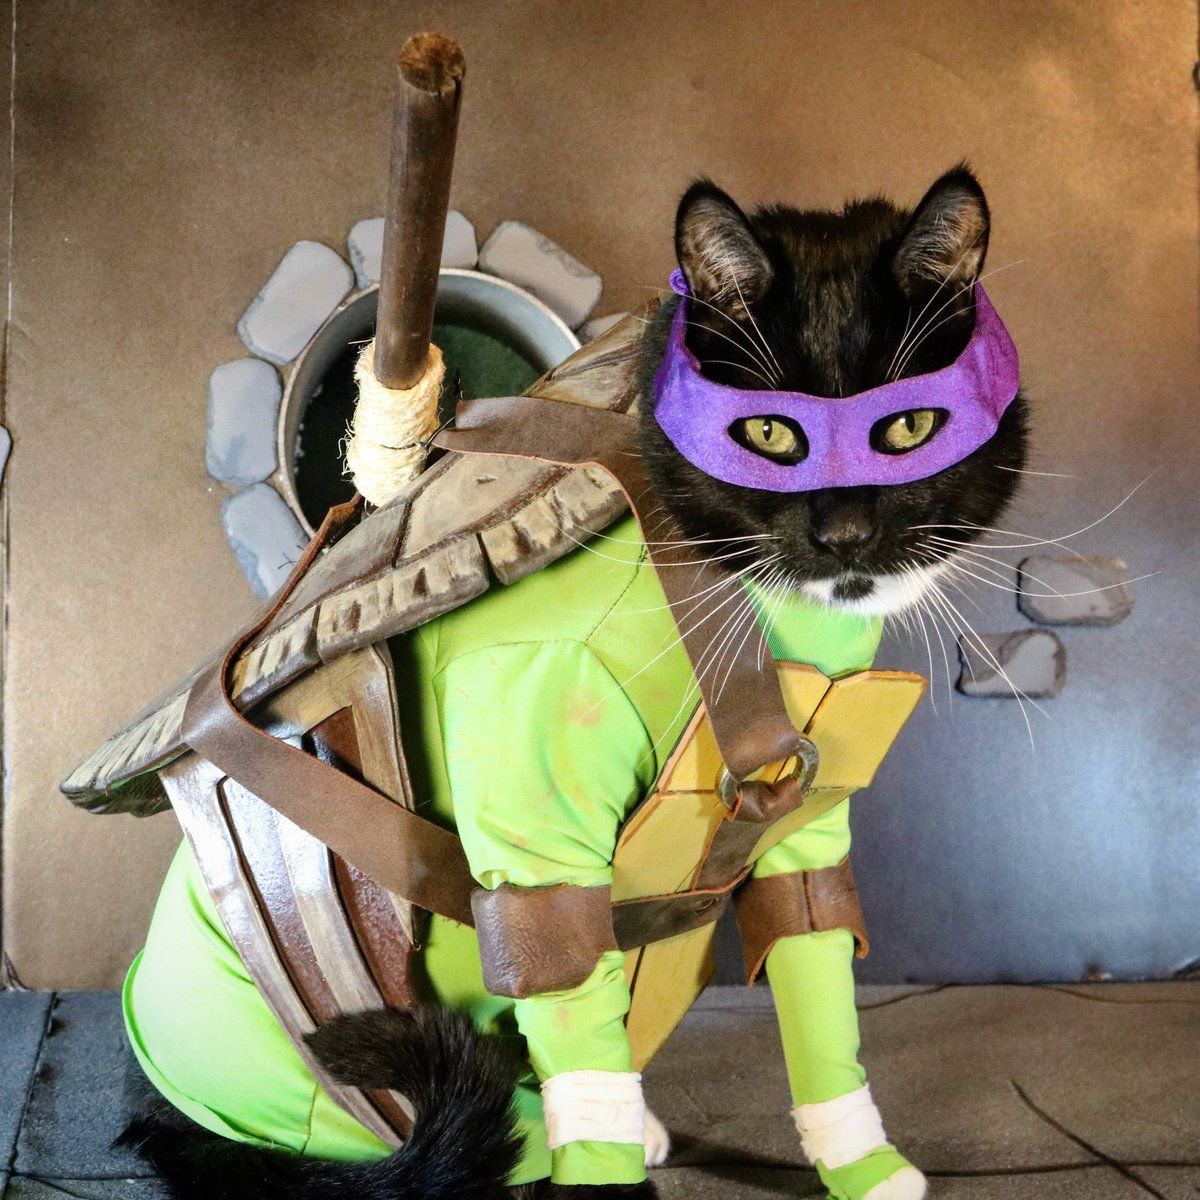 Donatello is best Turtle.  After all, trending order would never lie.  #TMNT